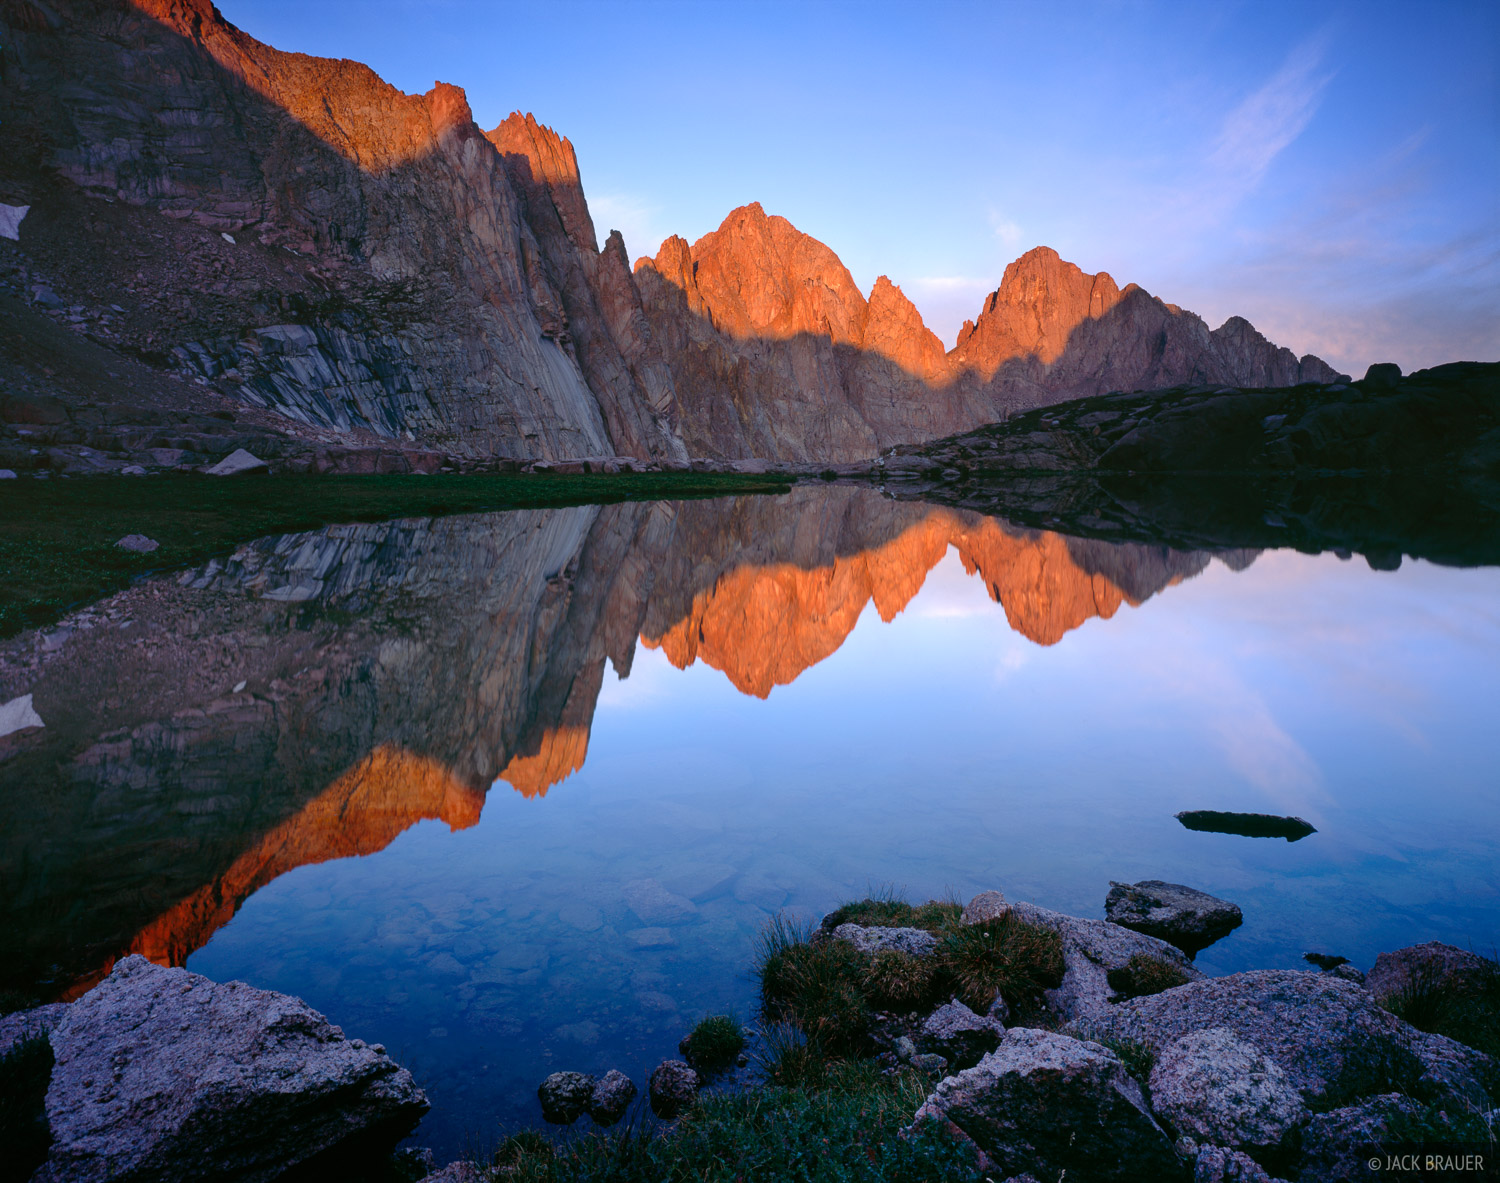 Needles Range Sunrise, Weminuche Wilderness, Colorado, photo